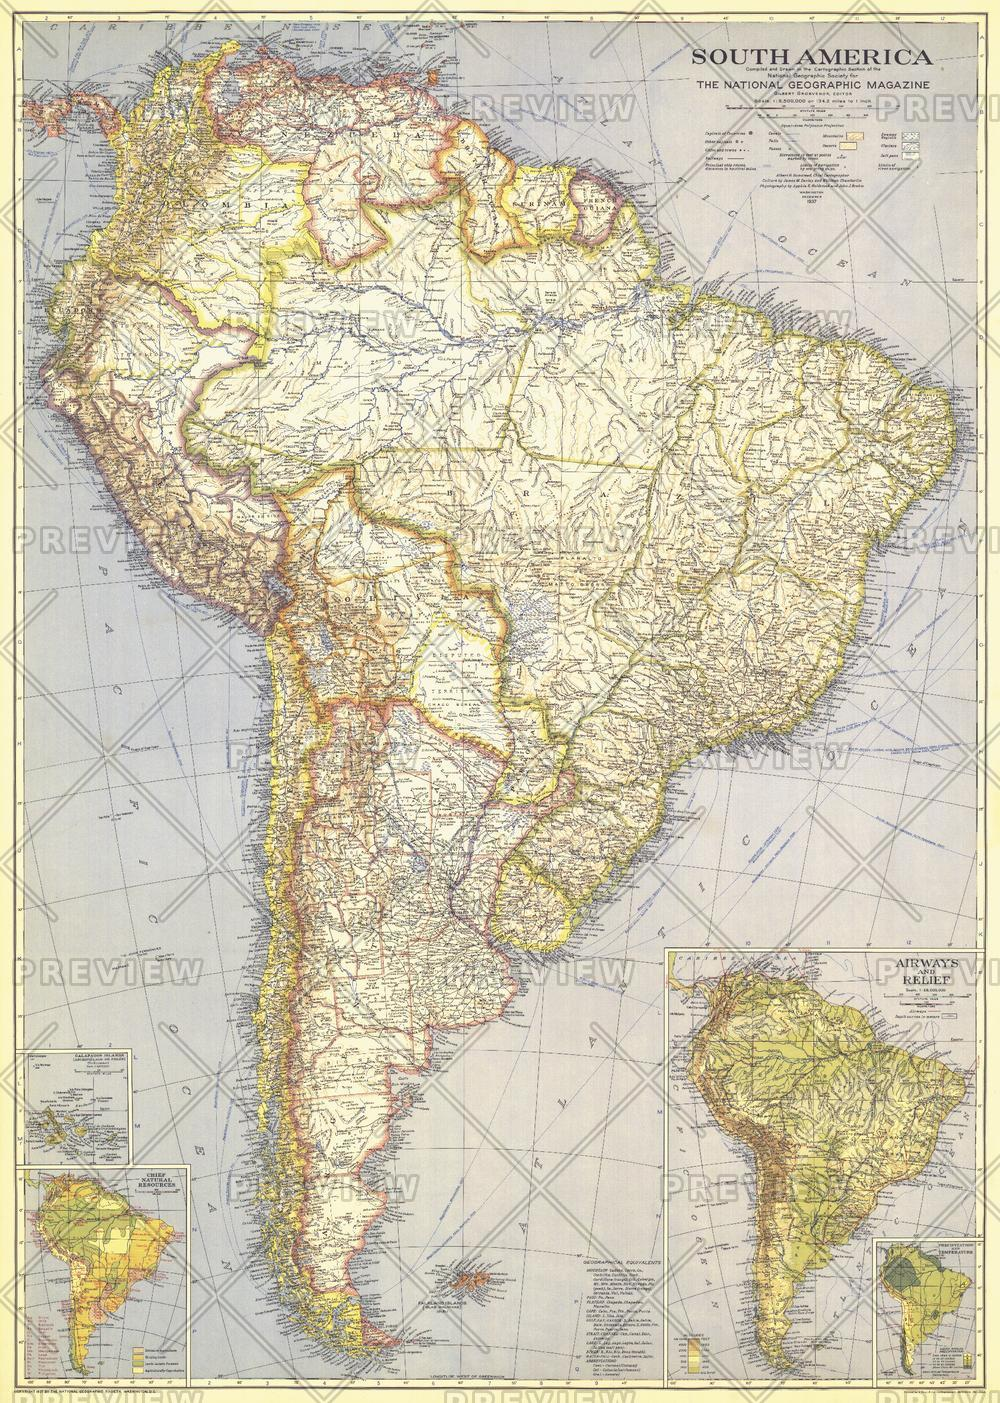 South America  -  Published 1937